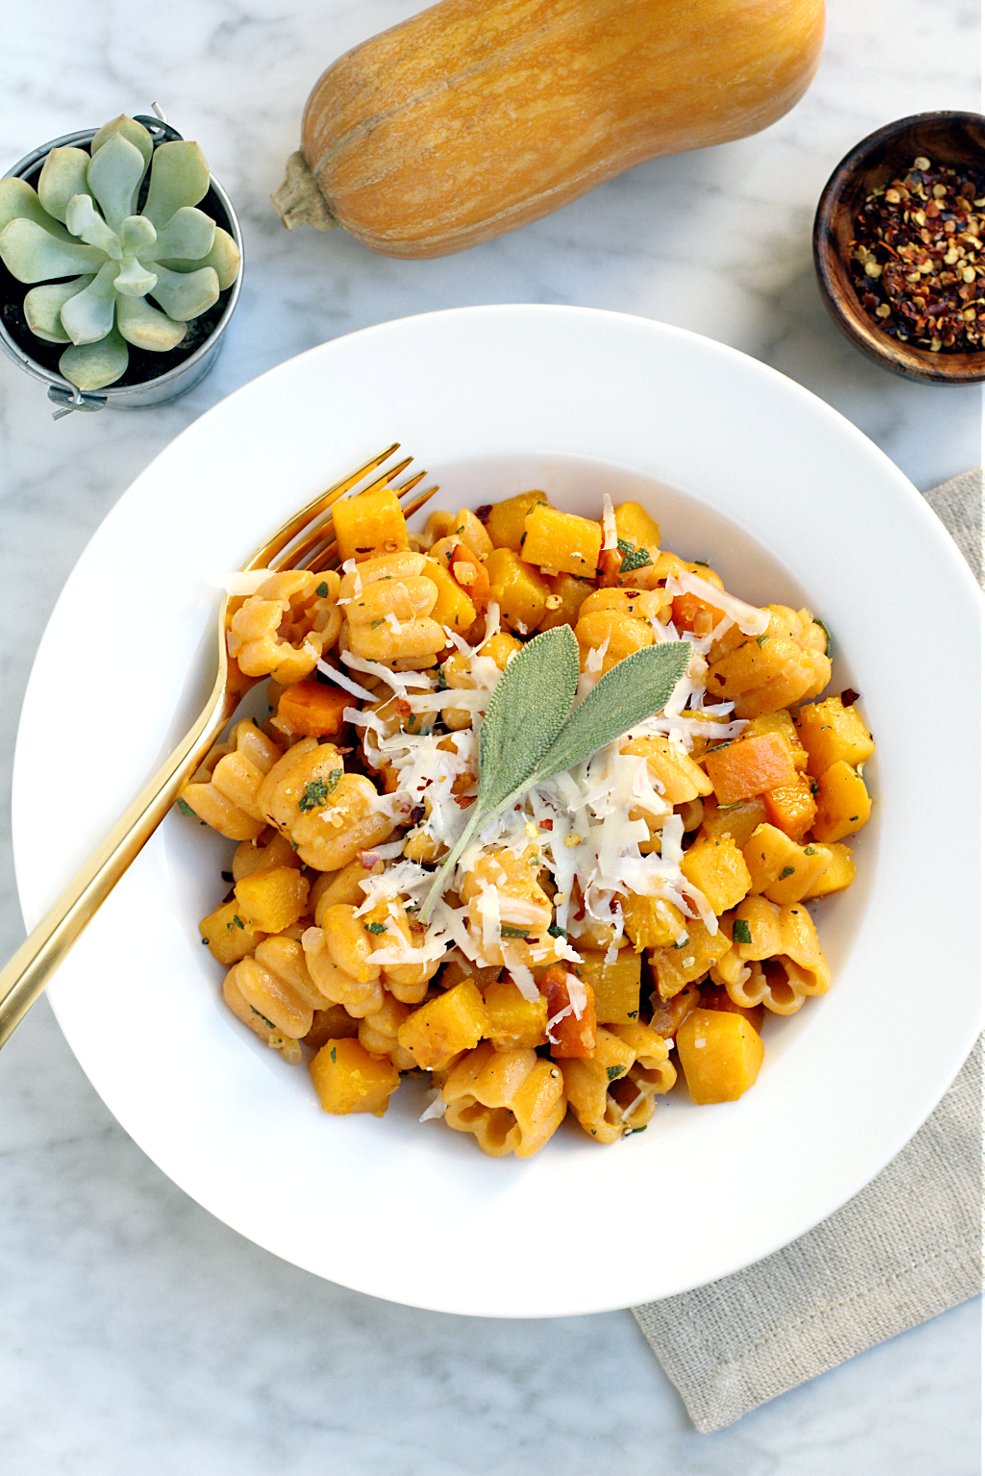 Image of pasta with butternut squash and sage.